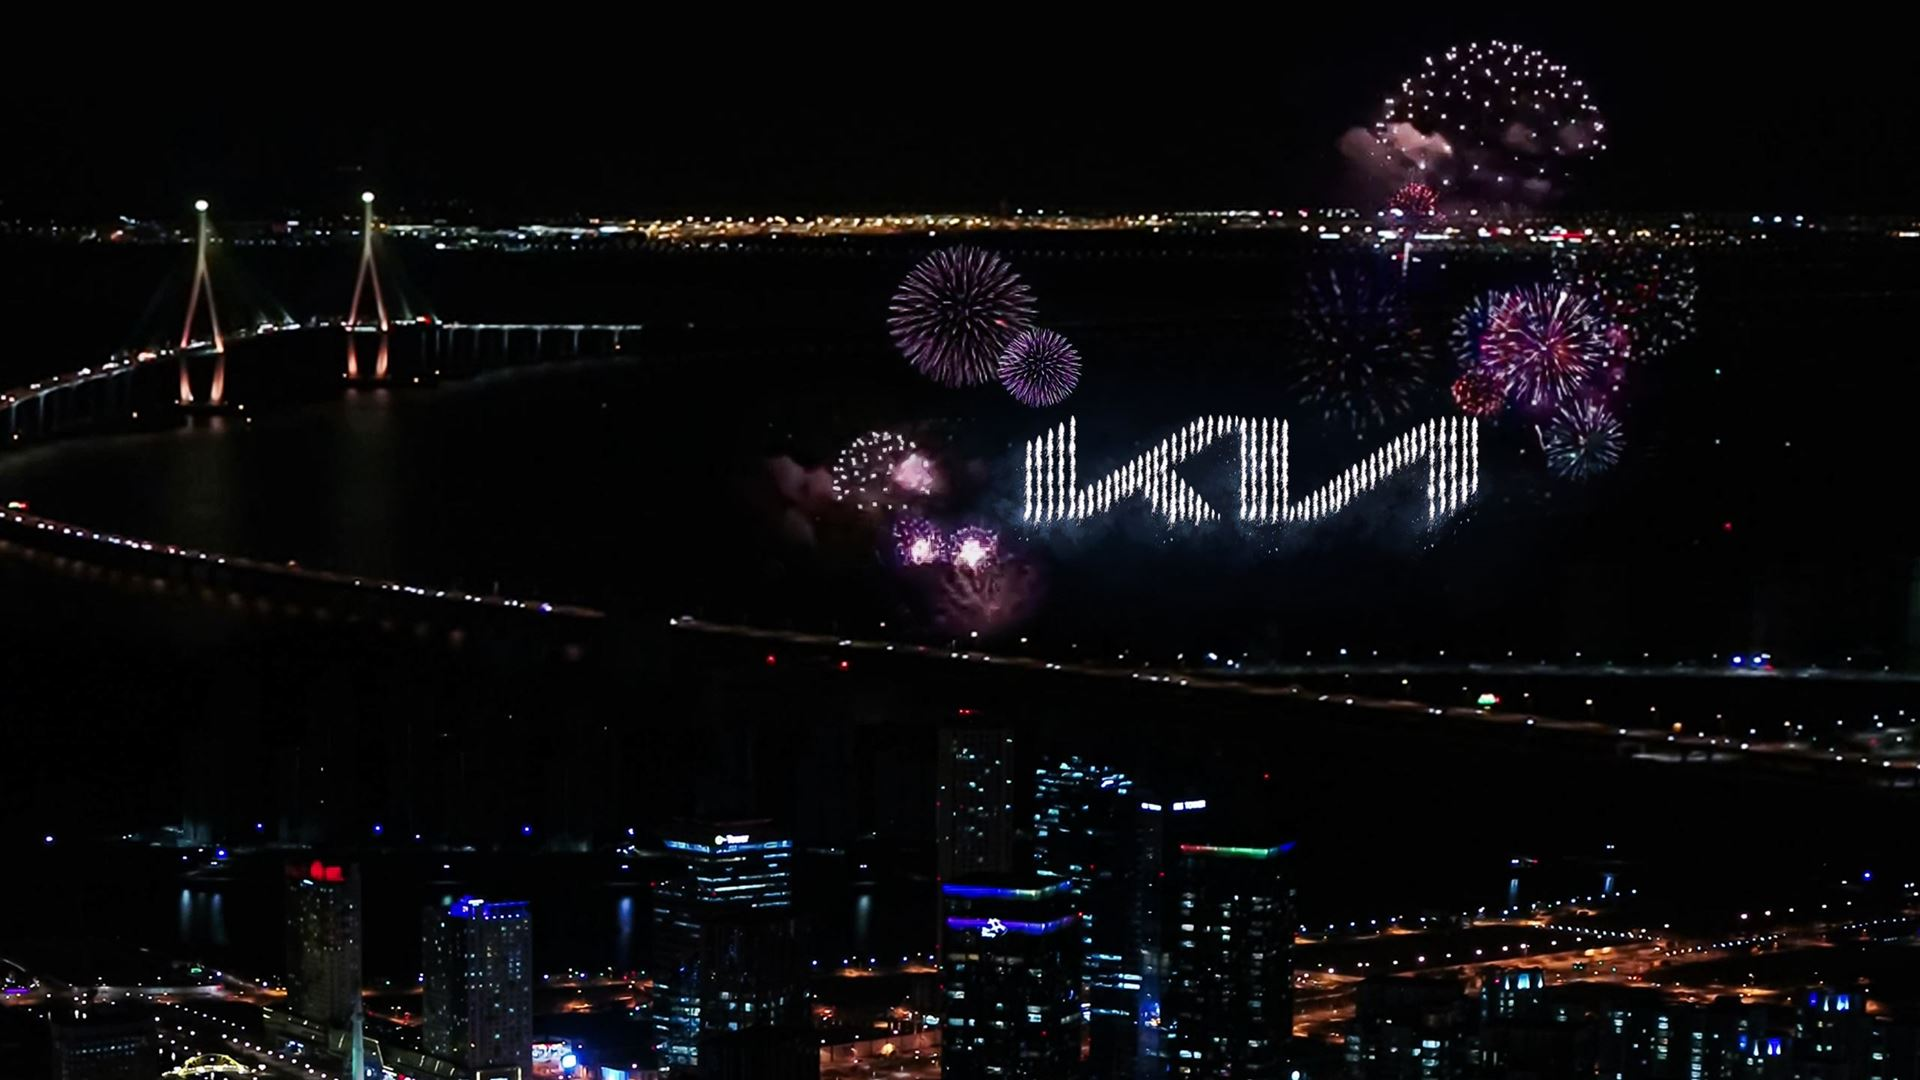 Kia unveils new logo and global brand slogan to ignite its bold transformation for the future - Image 3